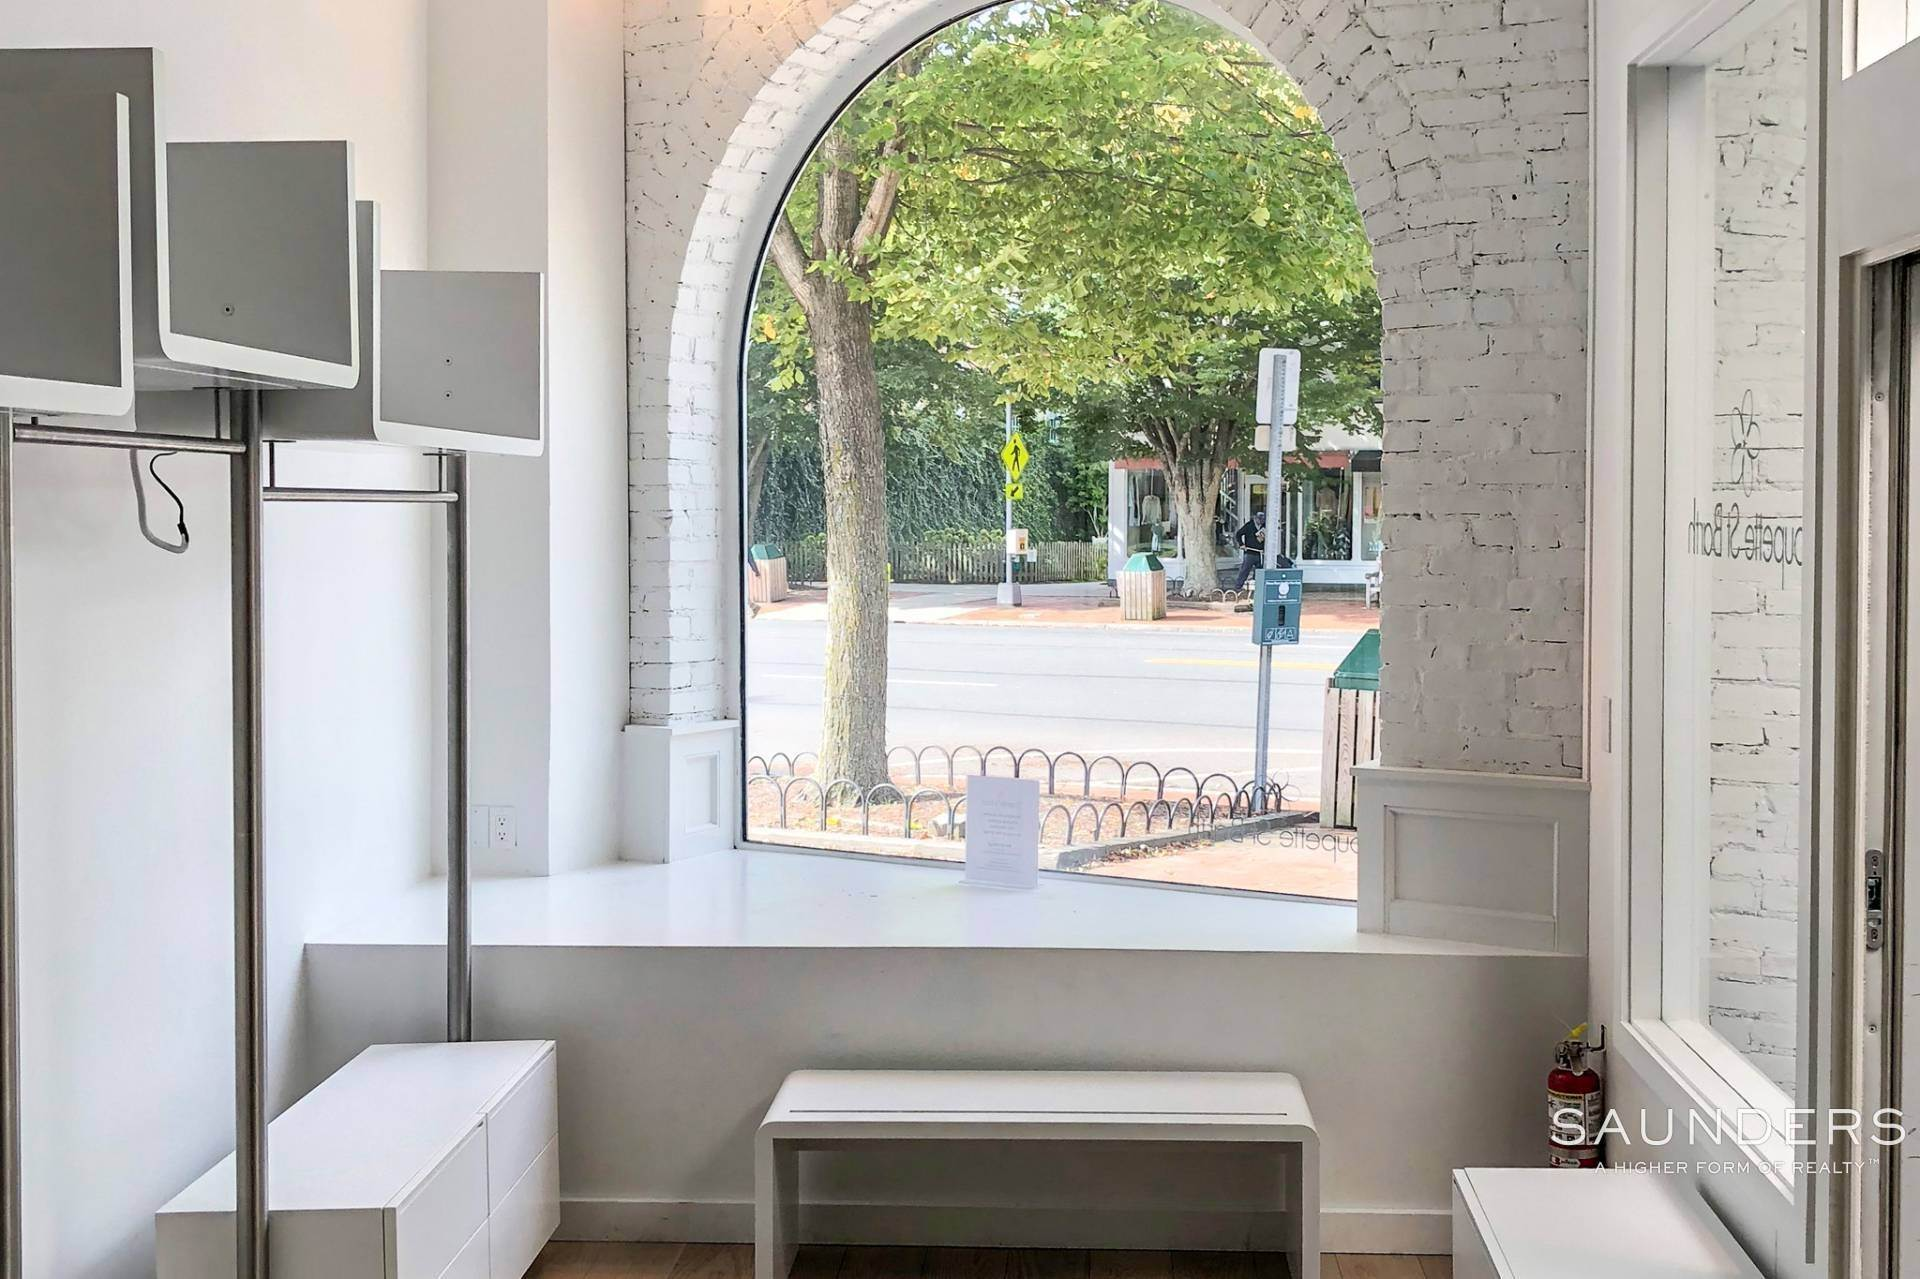 3. Commercial for Sale at East Hampton Village Retail For Sale- Investment Opportunity 52 Main Street, #2, East Hampton, East Hampton Town, NY 11937